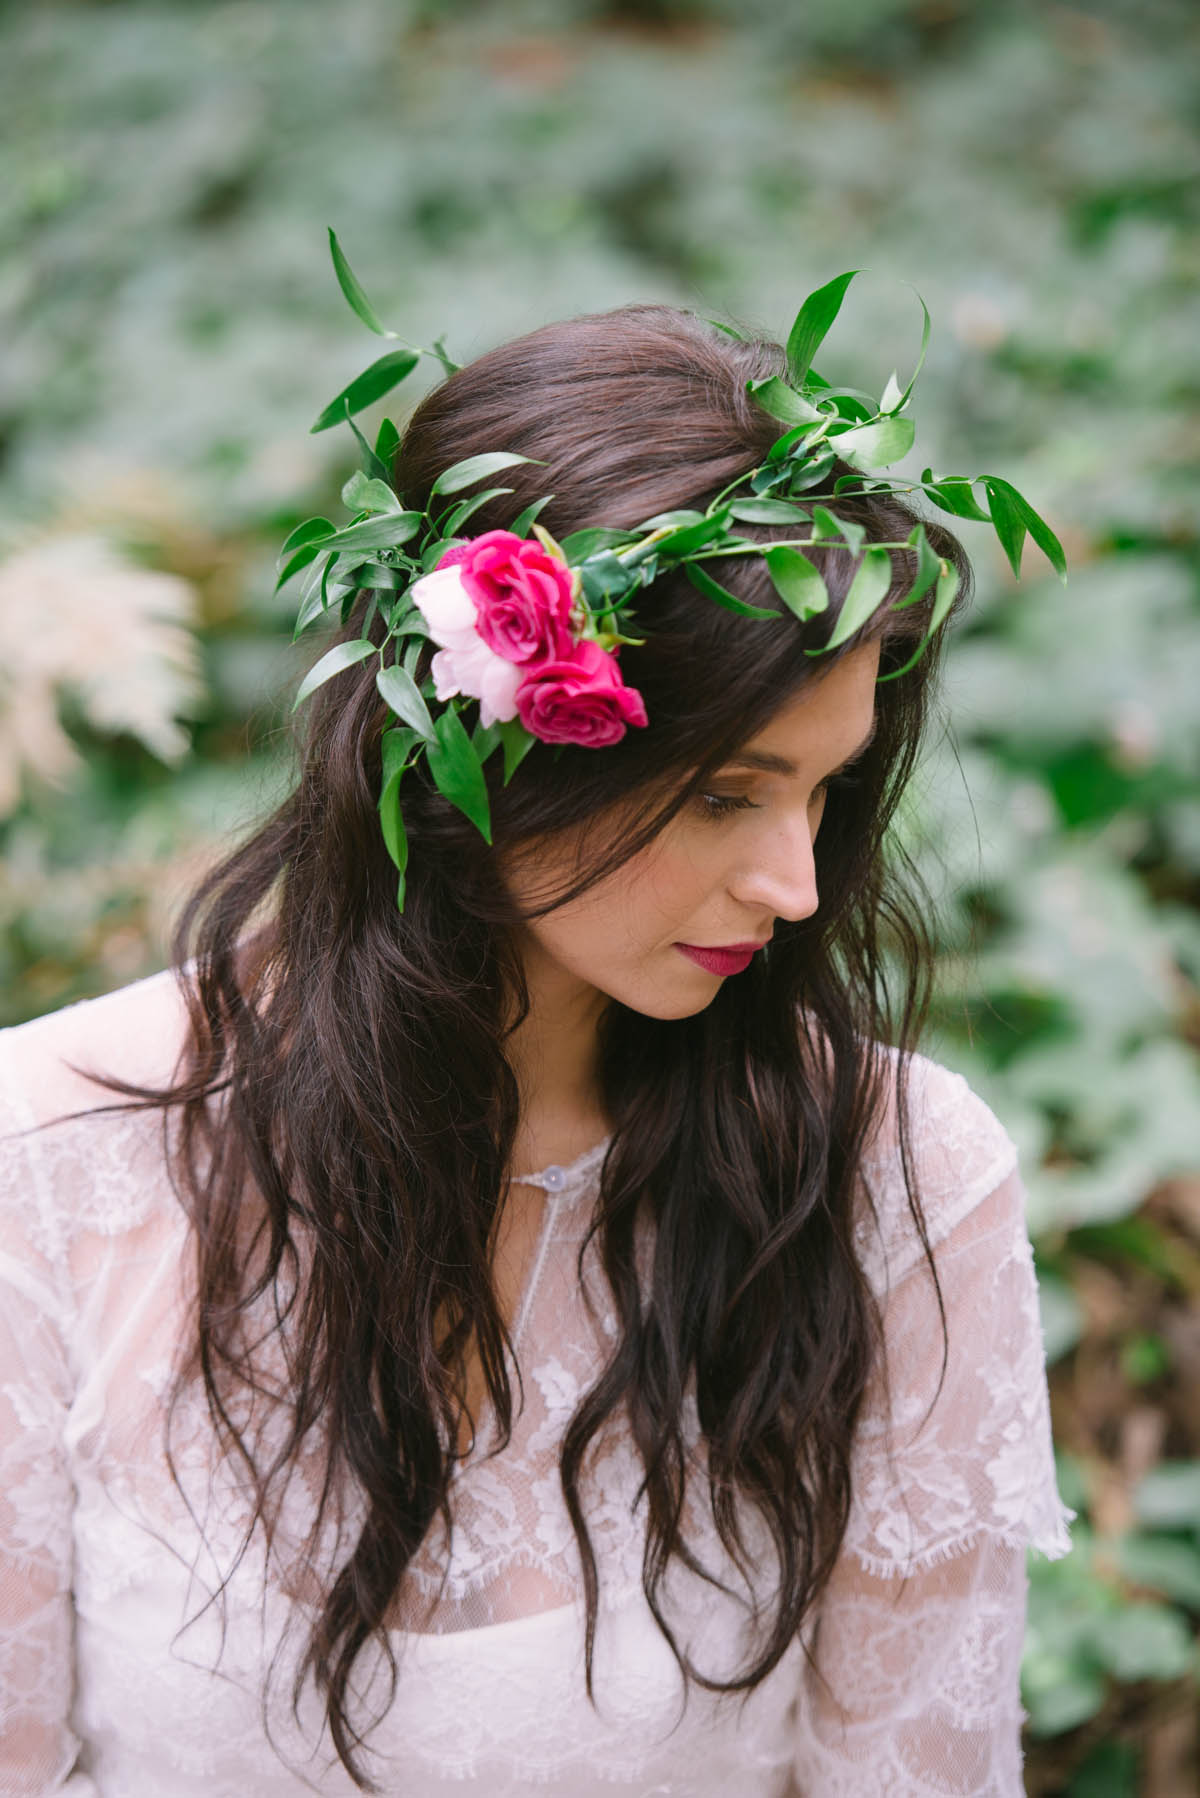 Midsummer Night's Dream Wedding Details | Bella Notte Events in San Francisco